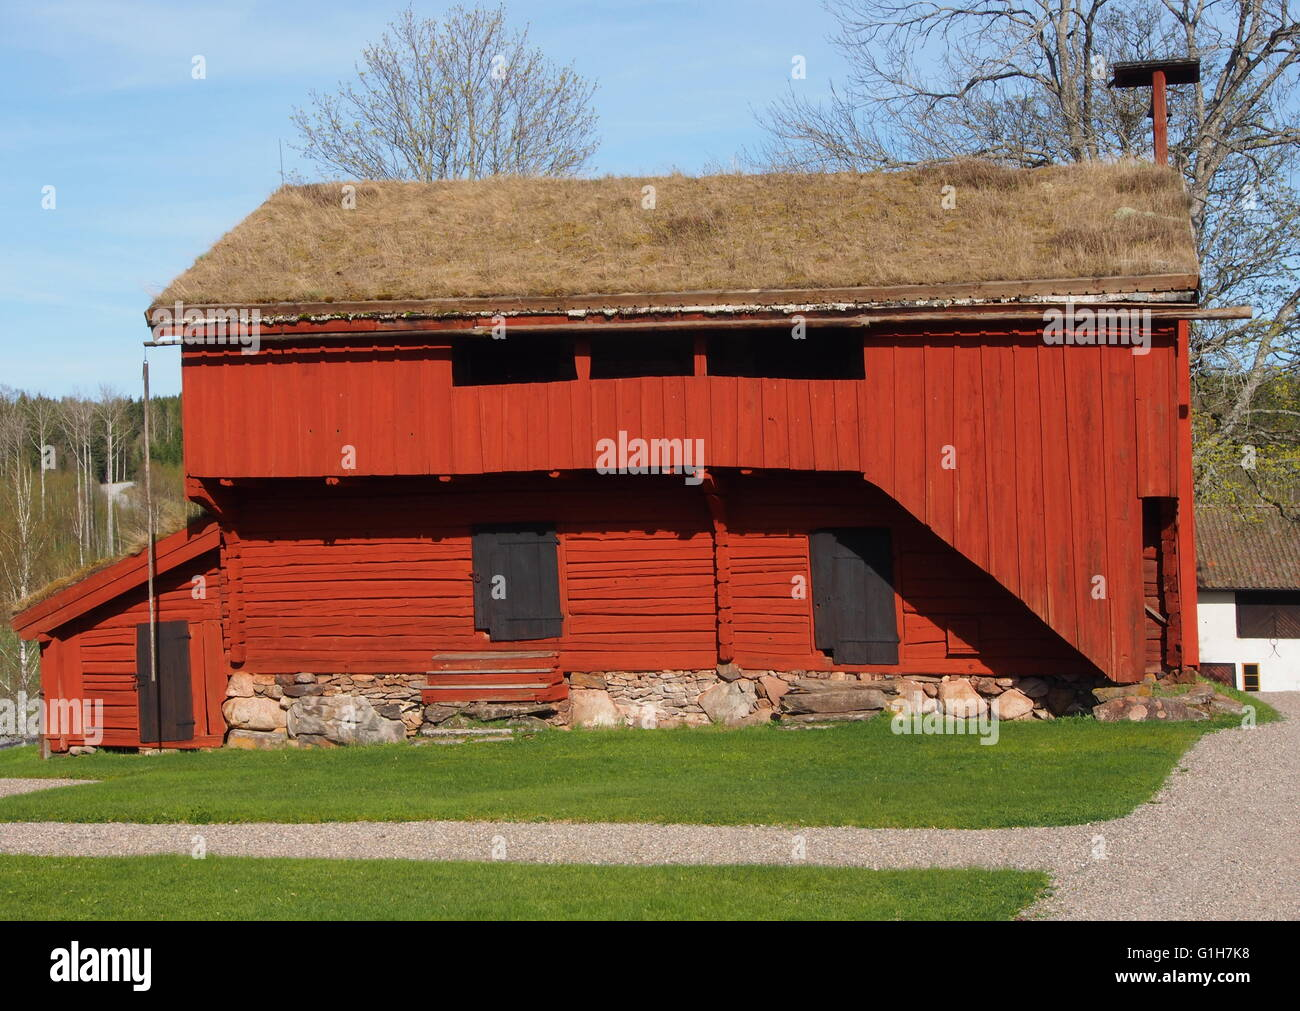 Old store building at a Swedish culture museum in Bergslagen, Sweden - Stock Image